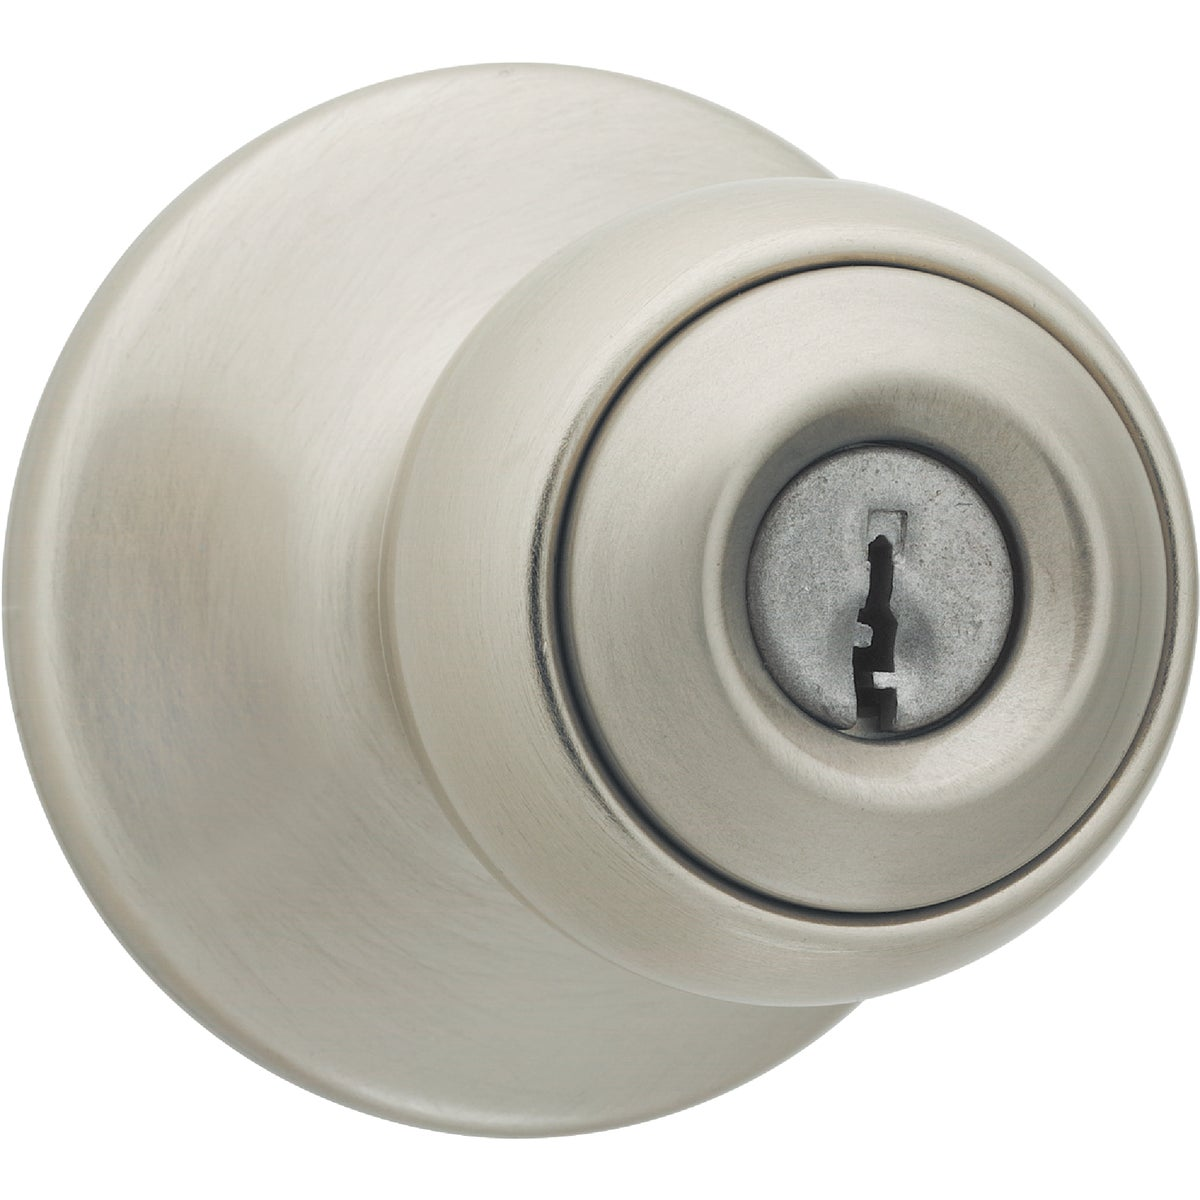 SN BX POLO ENTRY LOCK